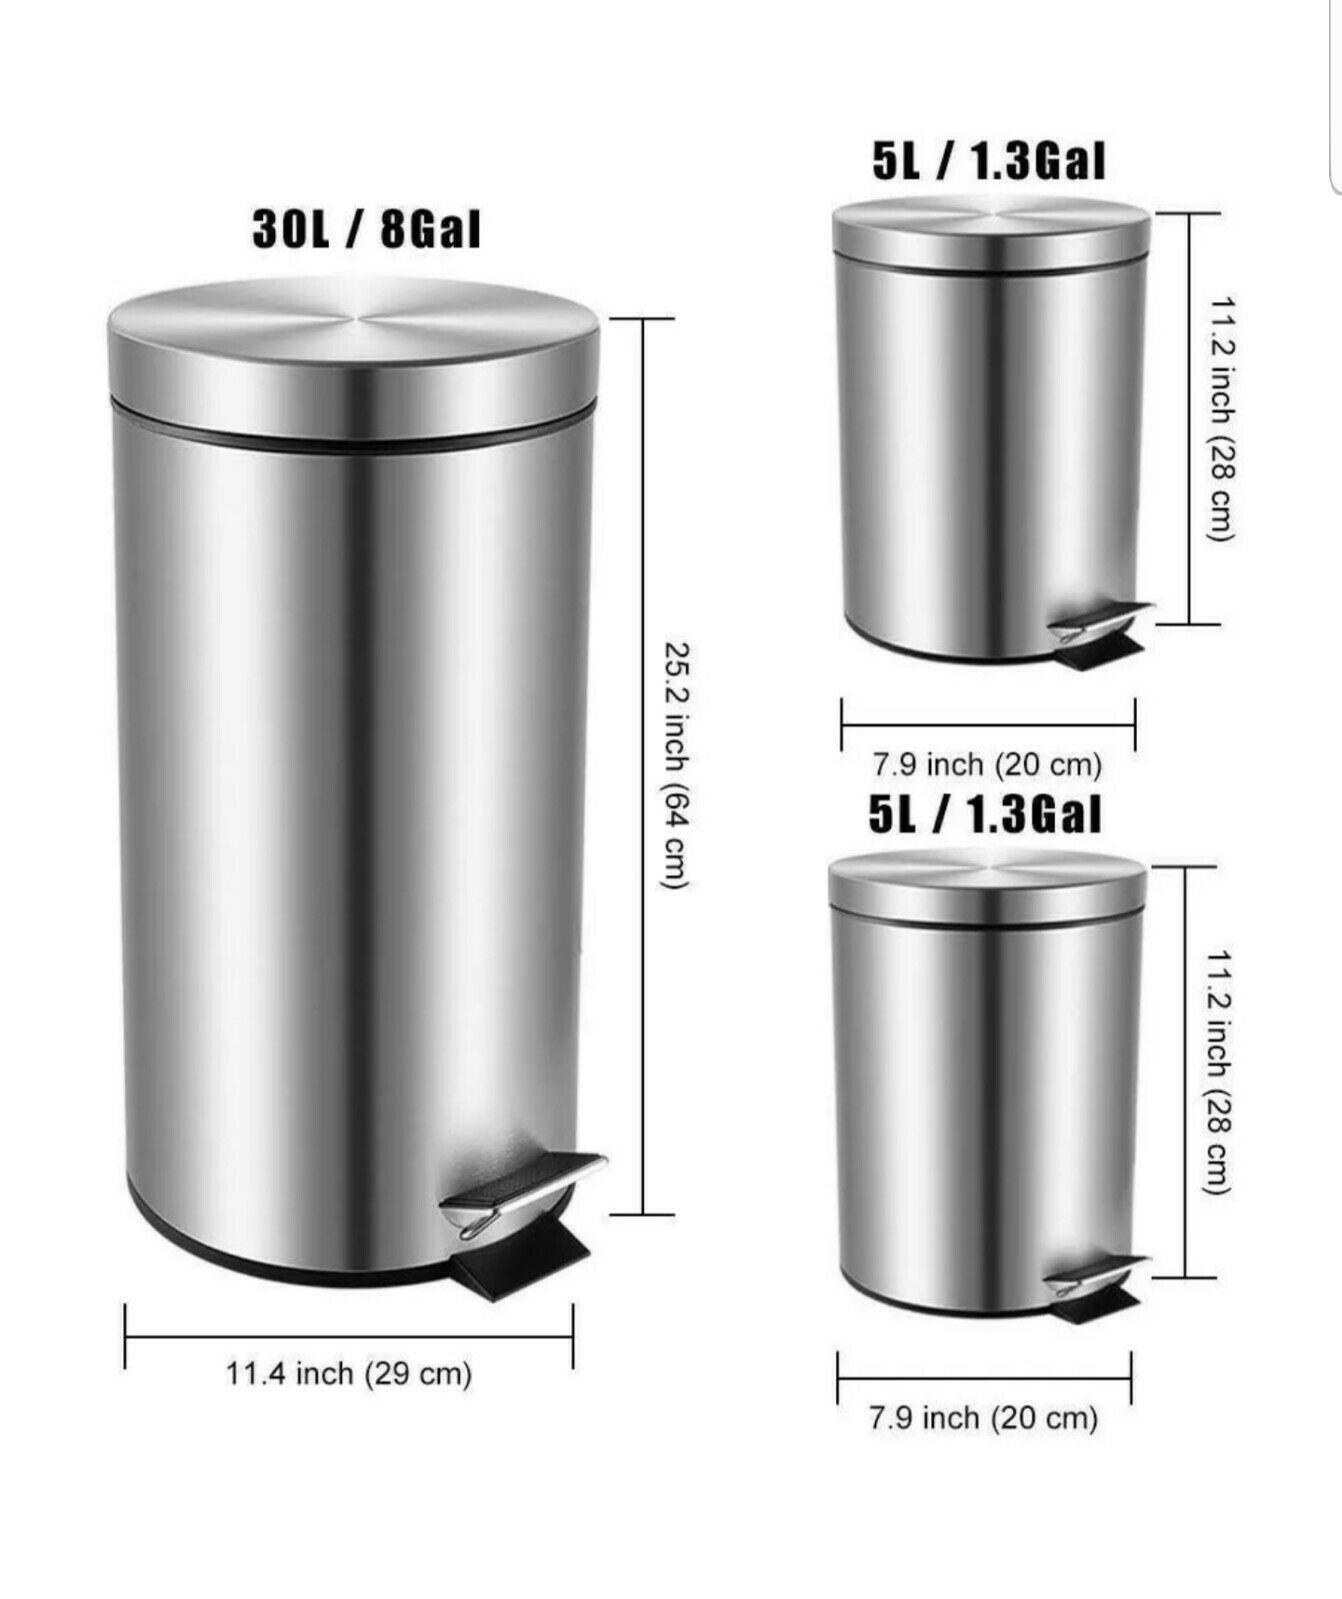 Garbage Can Garbage Can Ideas Garbage Can Garbagecan Fortune Candy Stainless Steel Step Garbage Trash Can Home 1 31 38 Gall Garbage Can Canning Trash Can